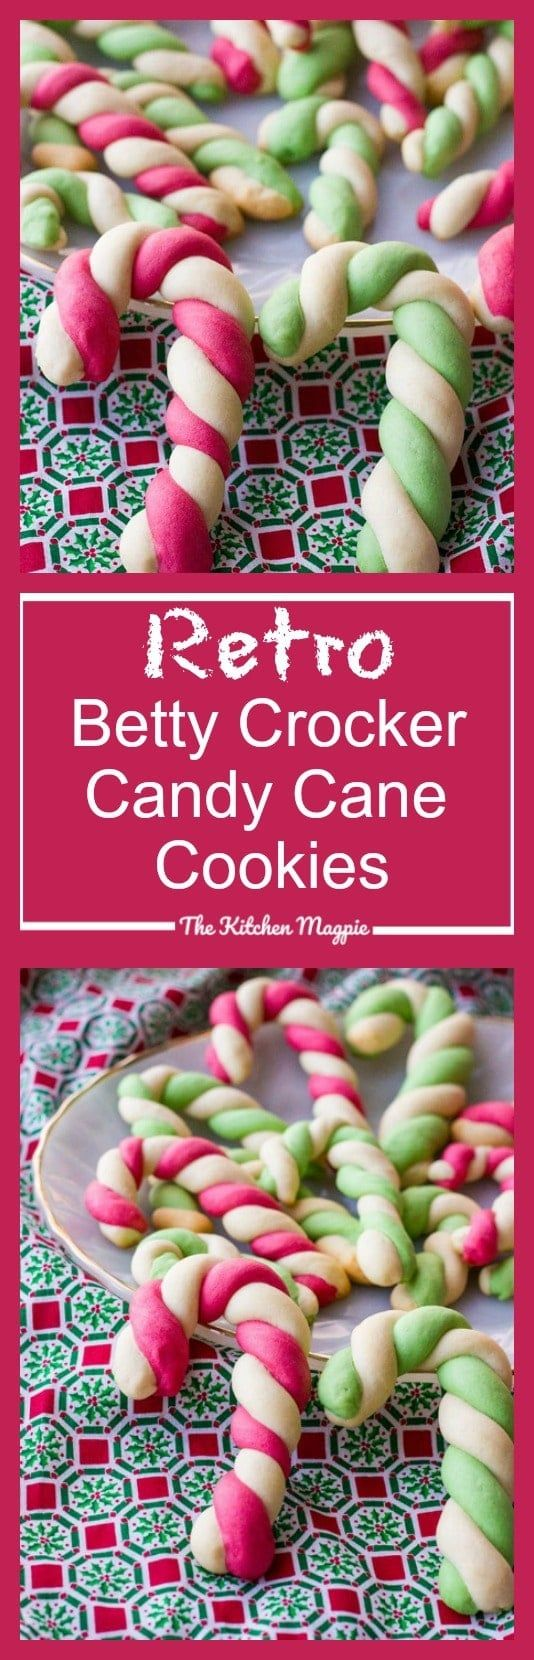 Retro Betty Crocker Candy Cane Cookies The Kitchen Magpie